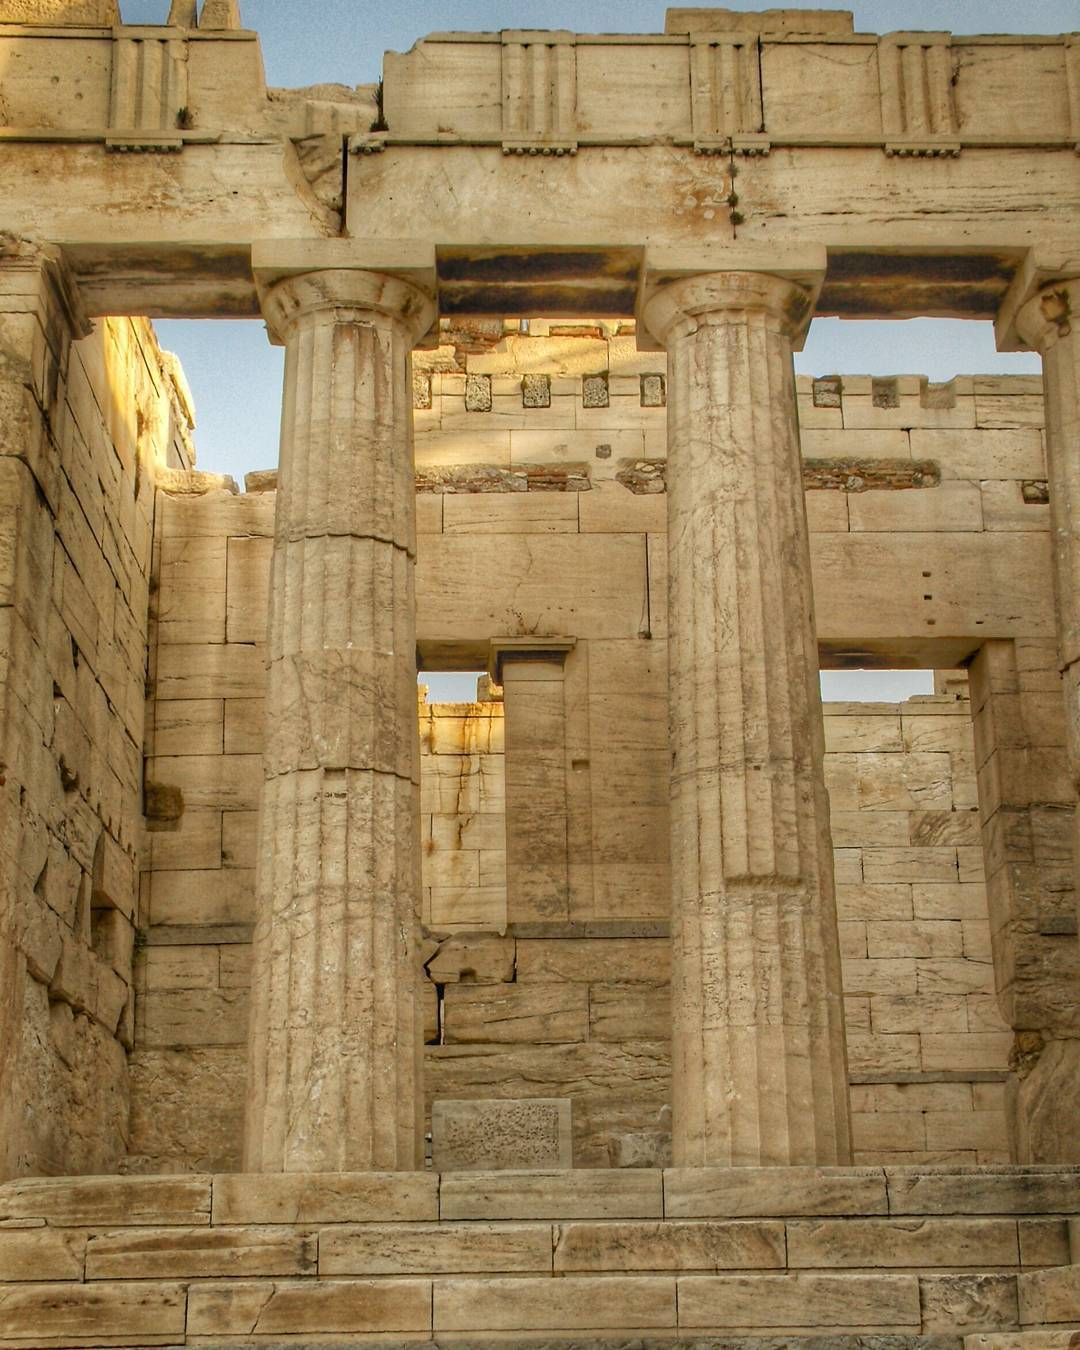 The Propylaia the grand entrance gate to the Acropolis built after the Parthenon in 437 BCE. Athens Greece. by postcardsandpassports